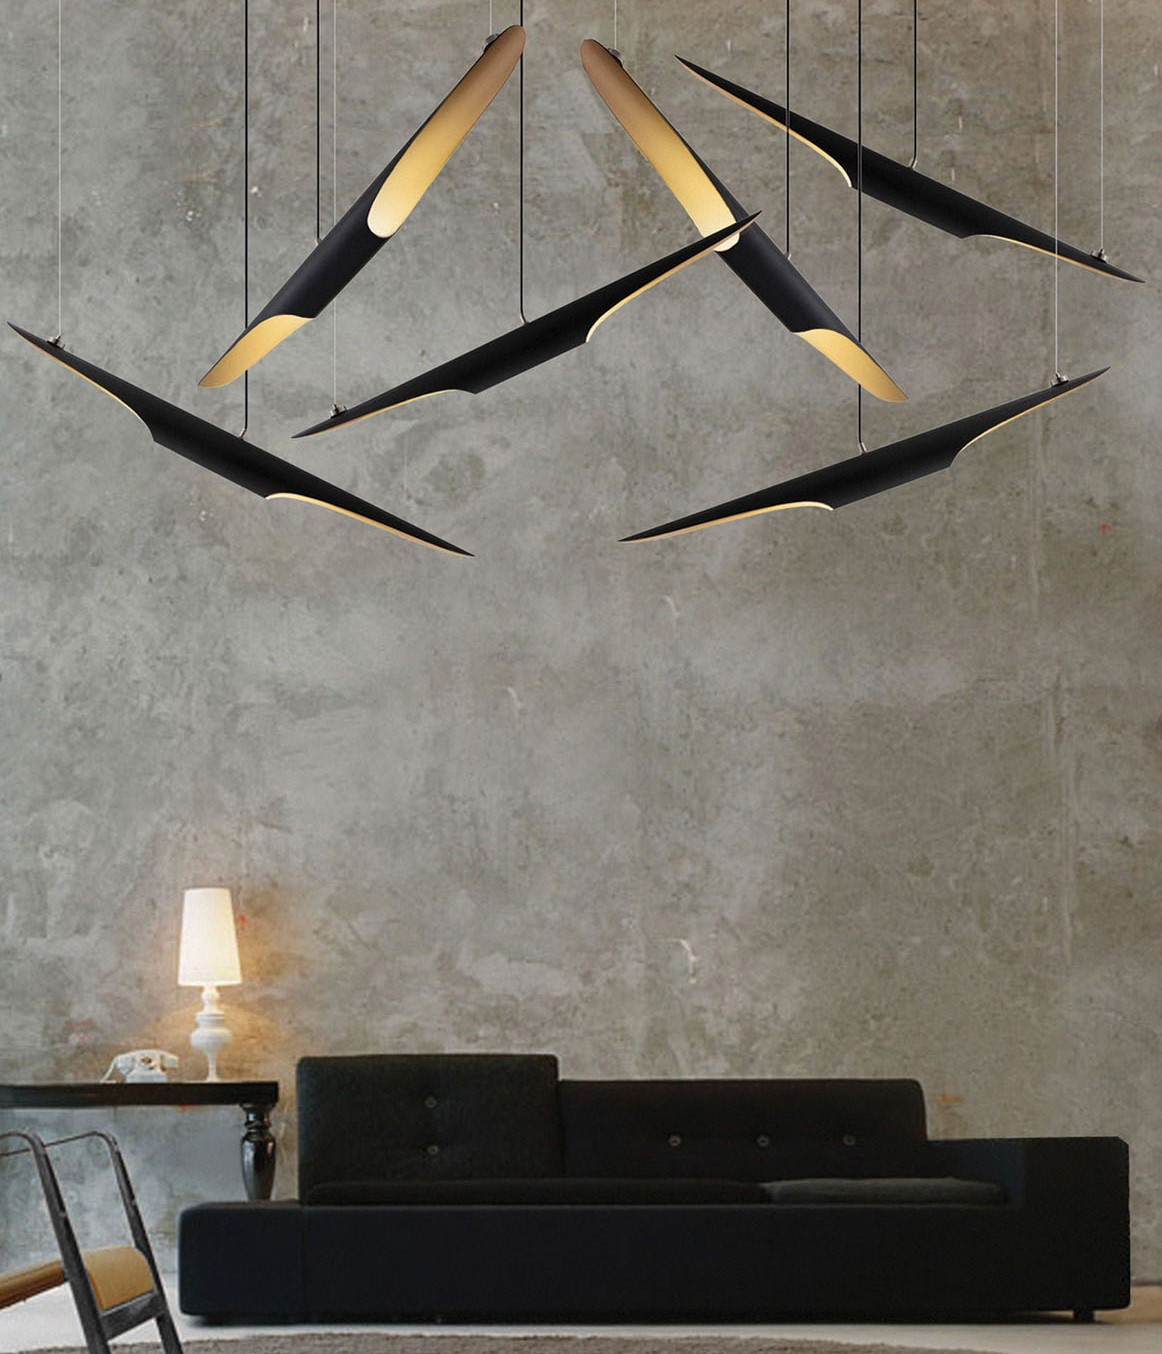 DelightFull Modern Lighting up to 60% Discount modern lighting DelightFull Modern Lighting up to 60% Discount designer light Delightfull 5